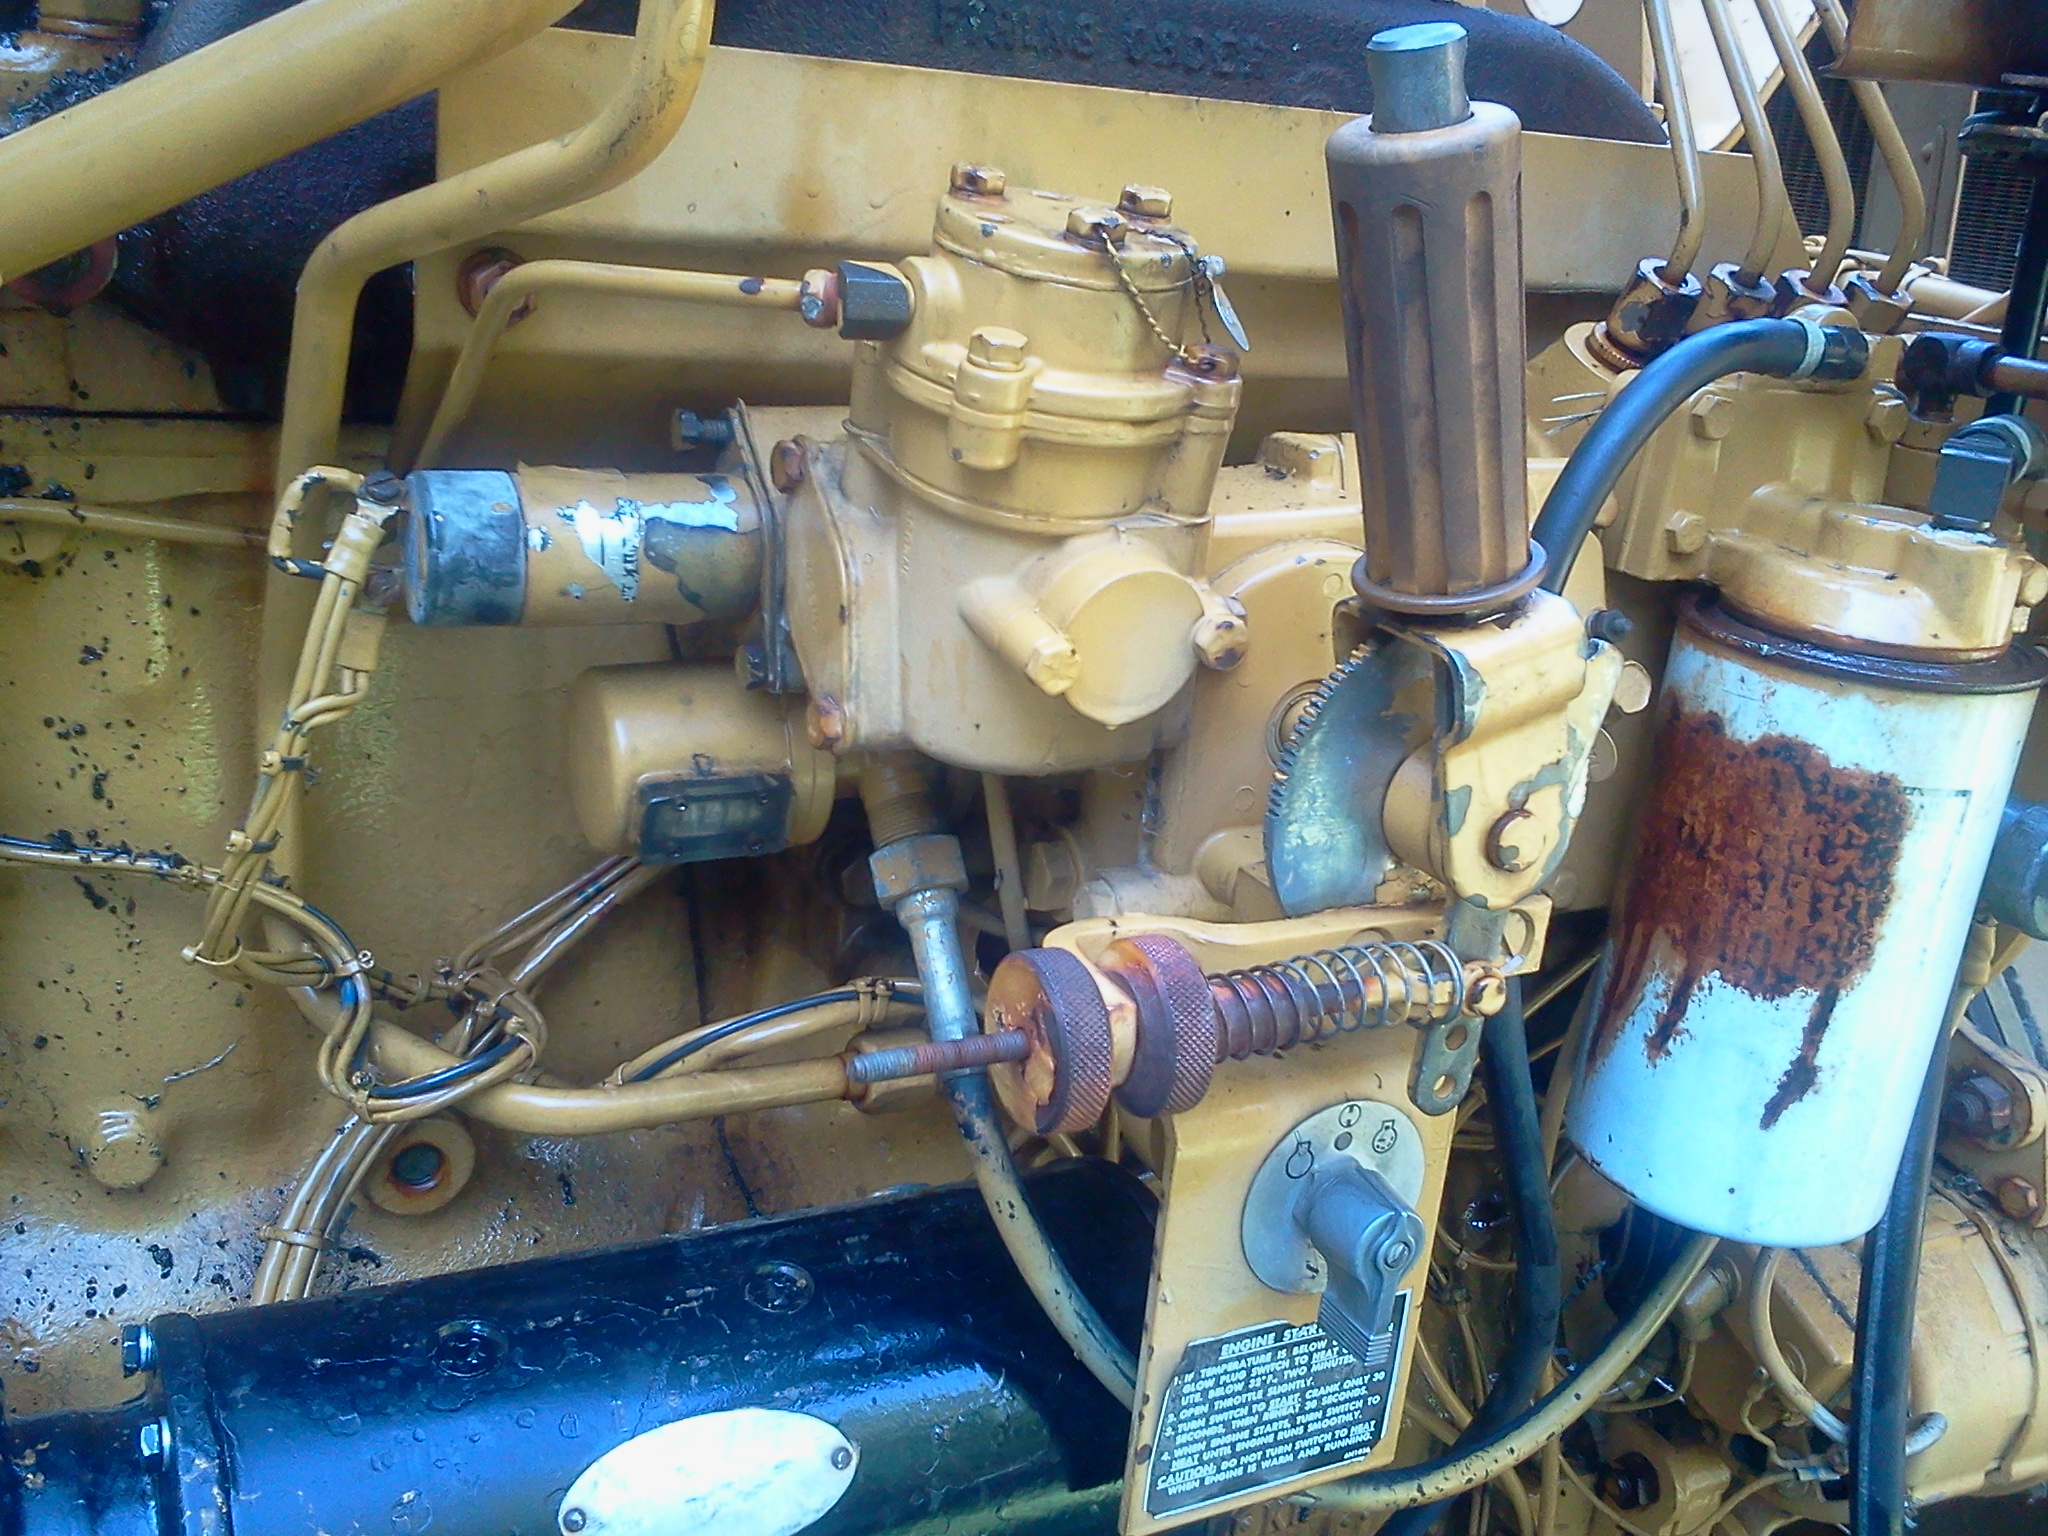 I have a caterpillar water pump with a 3304 diesel engine  It sat